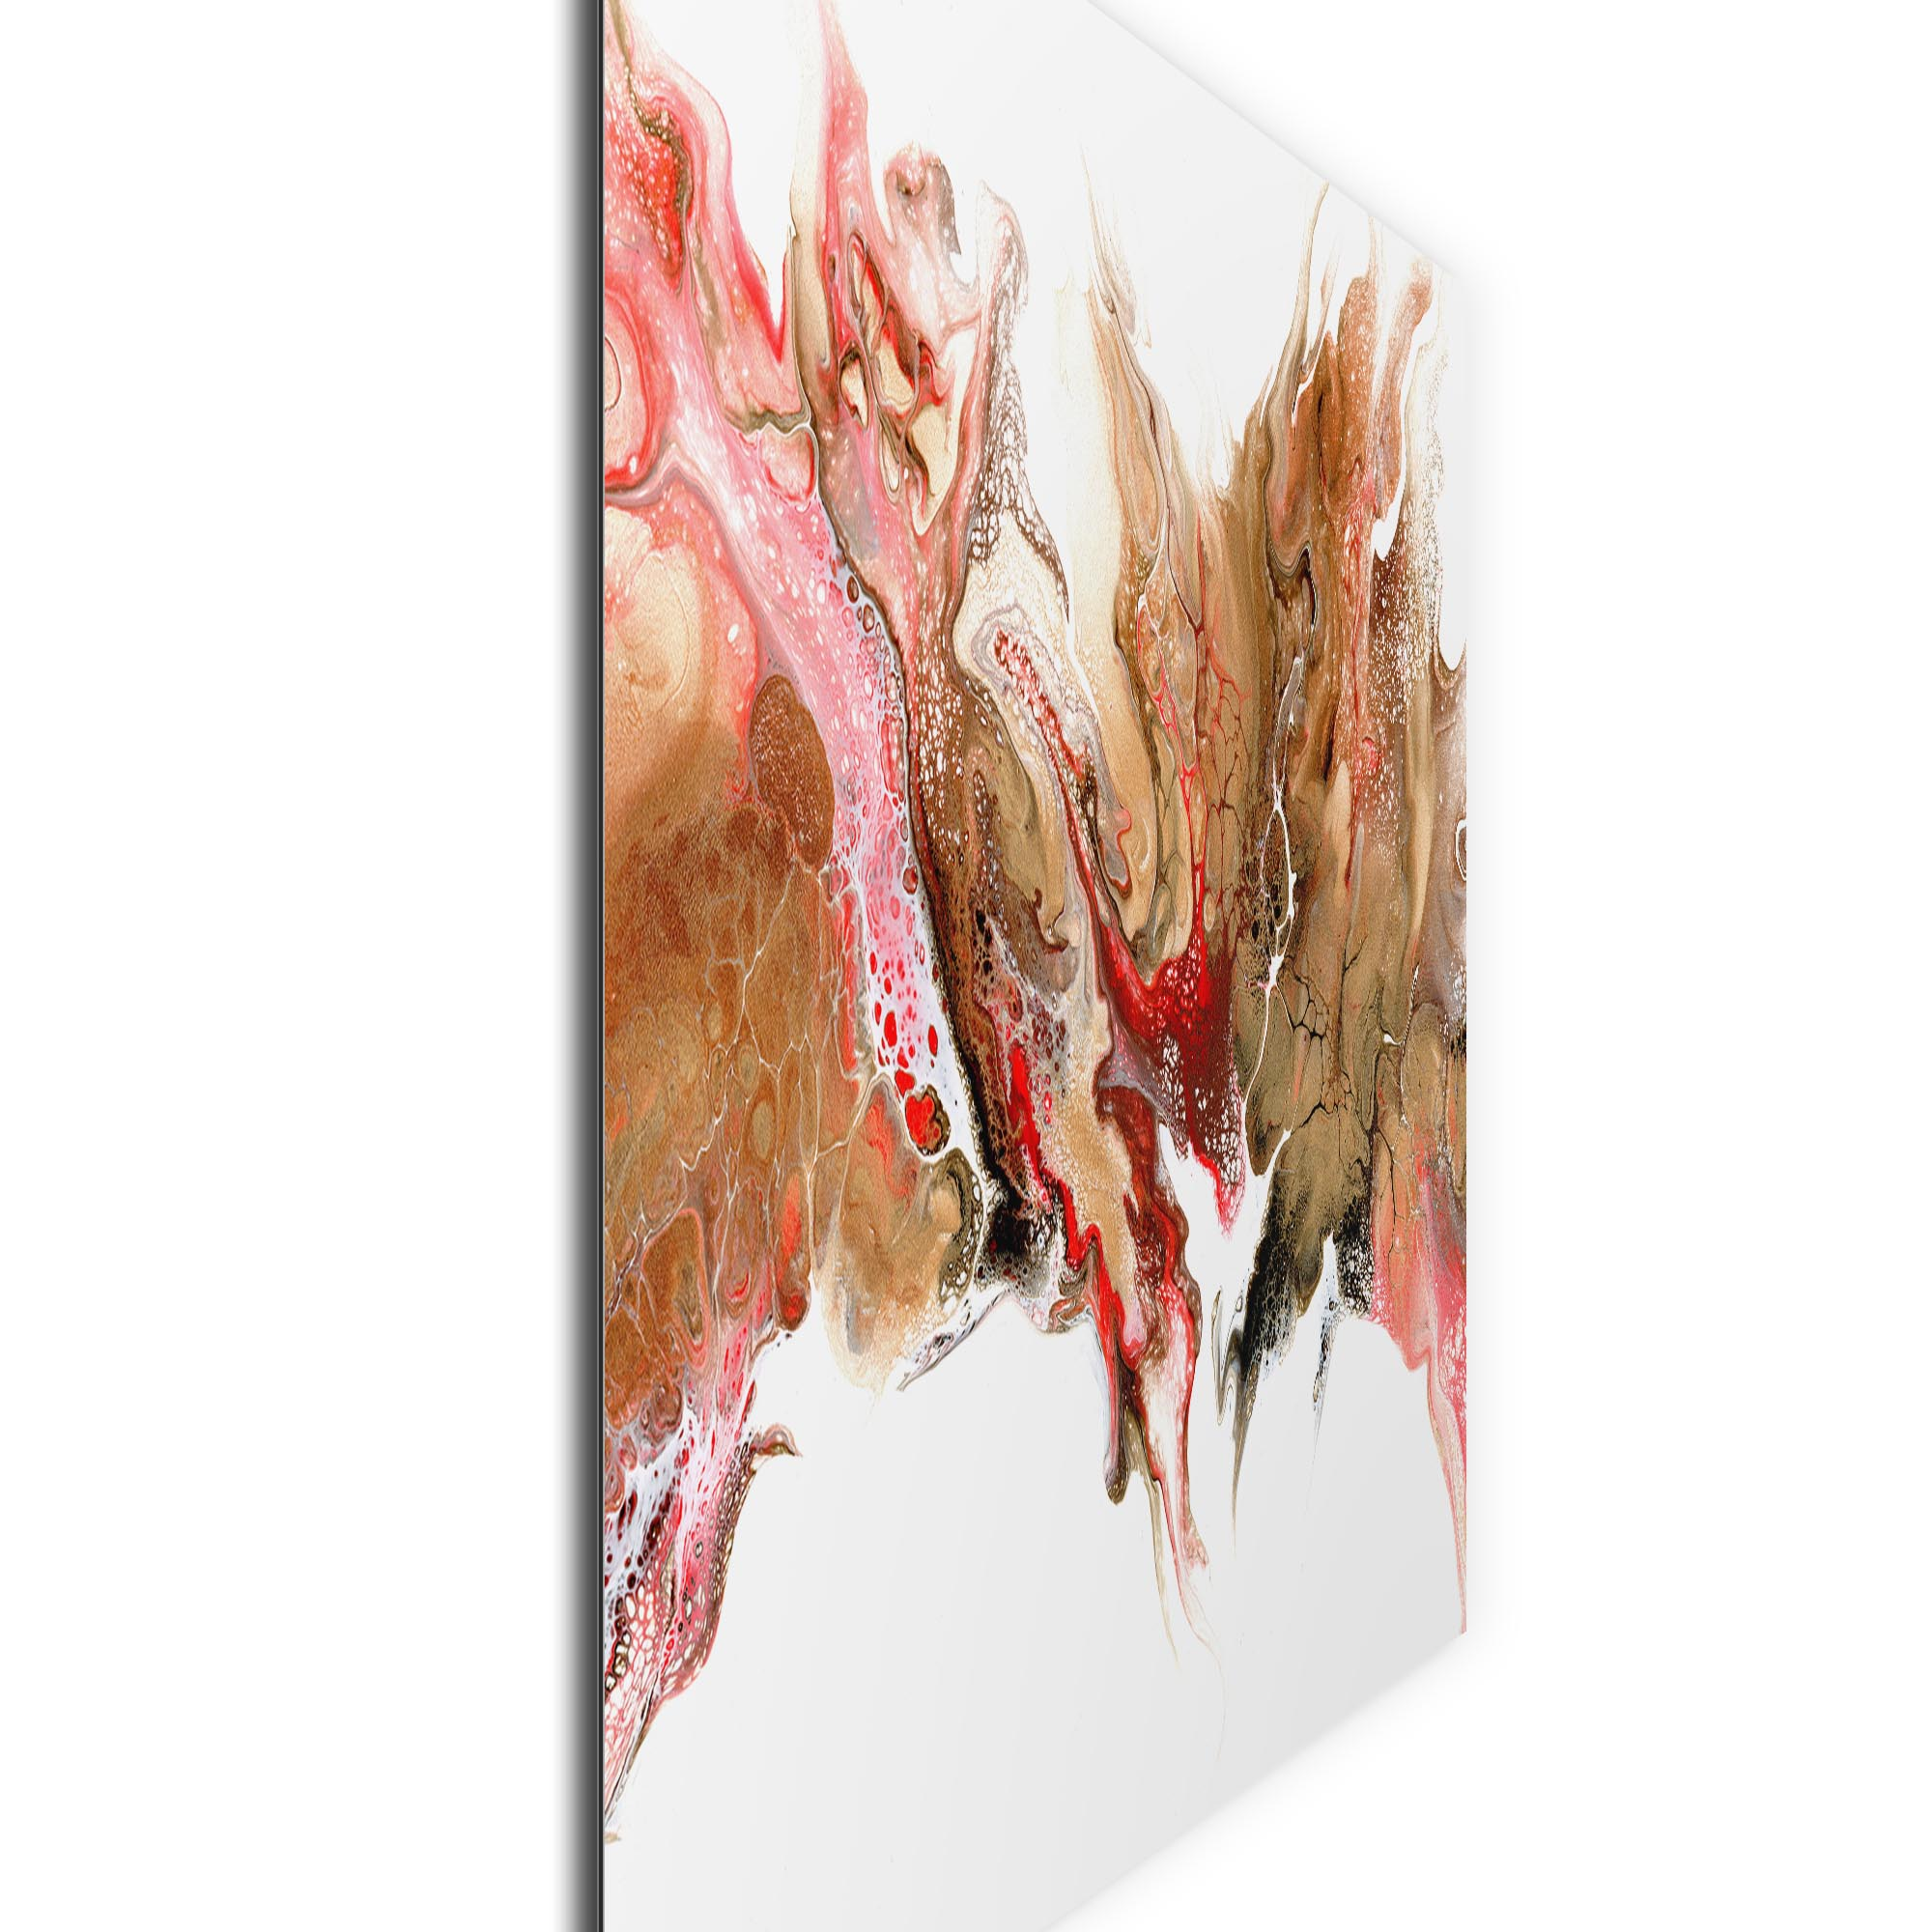 Swelter by Elana Reiter - Abstract Wall Art, Modern Home Decor (32in x 24in) - Image 2